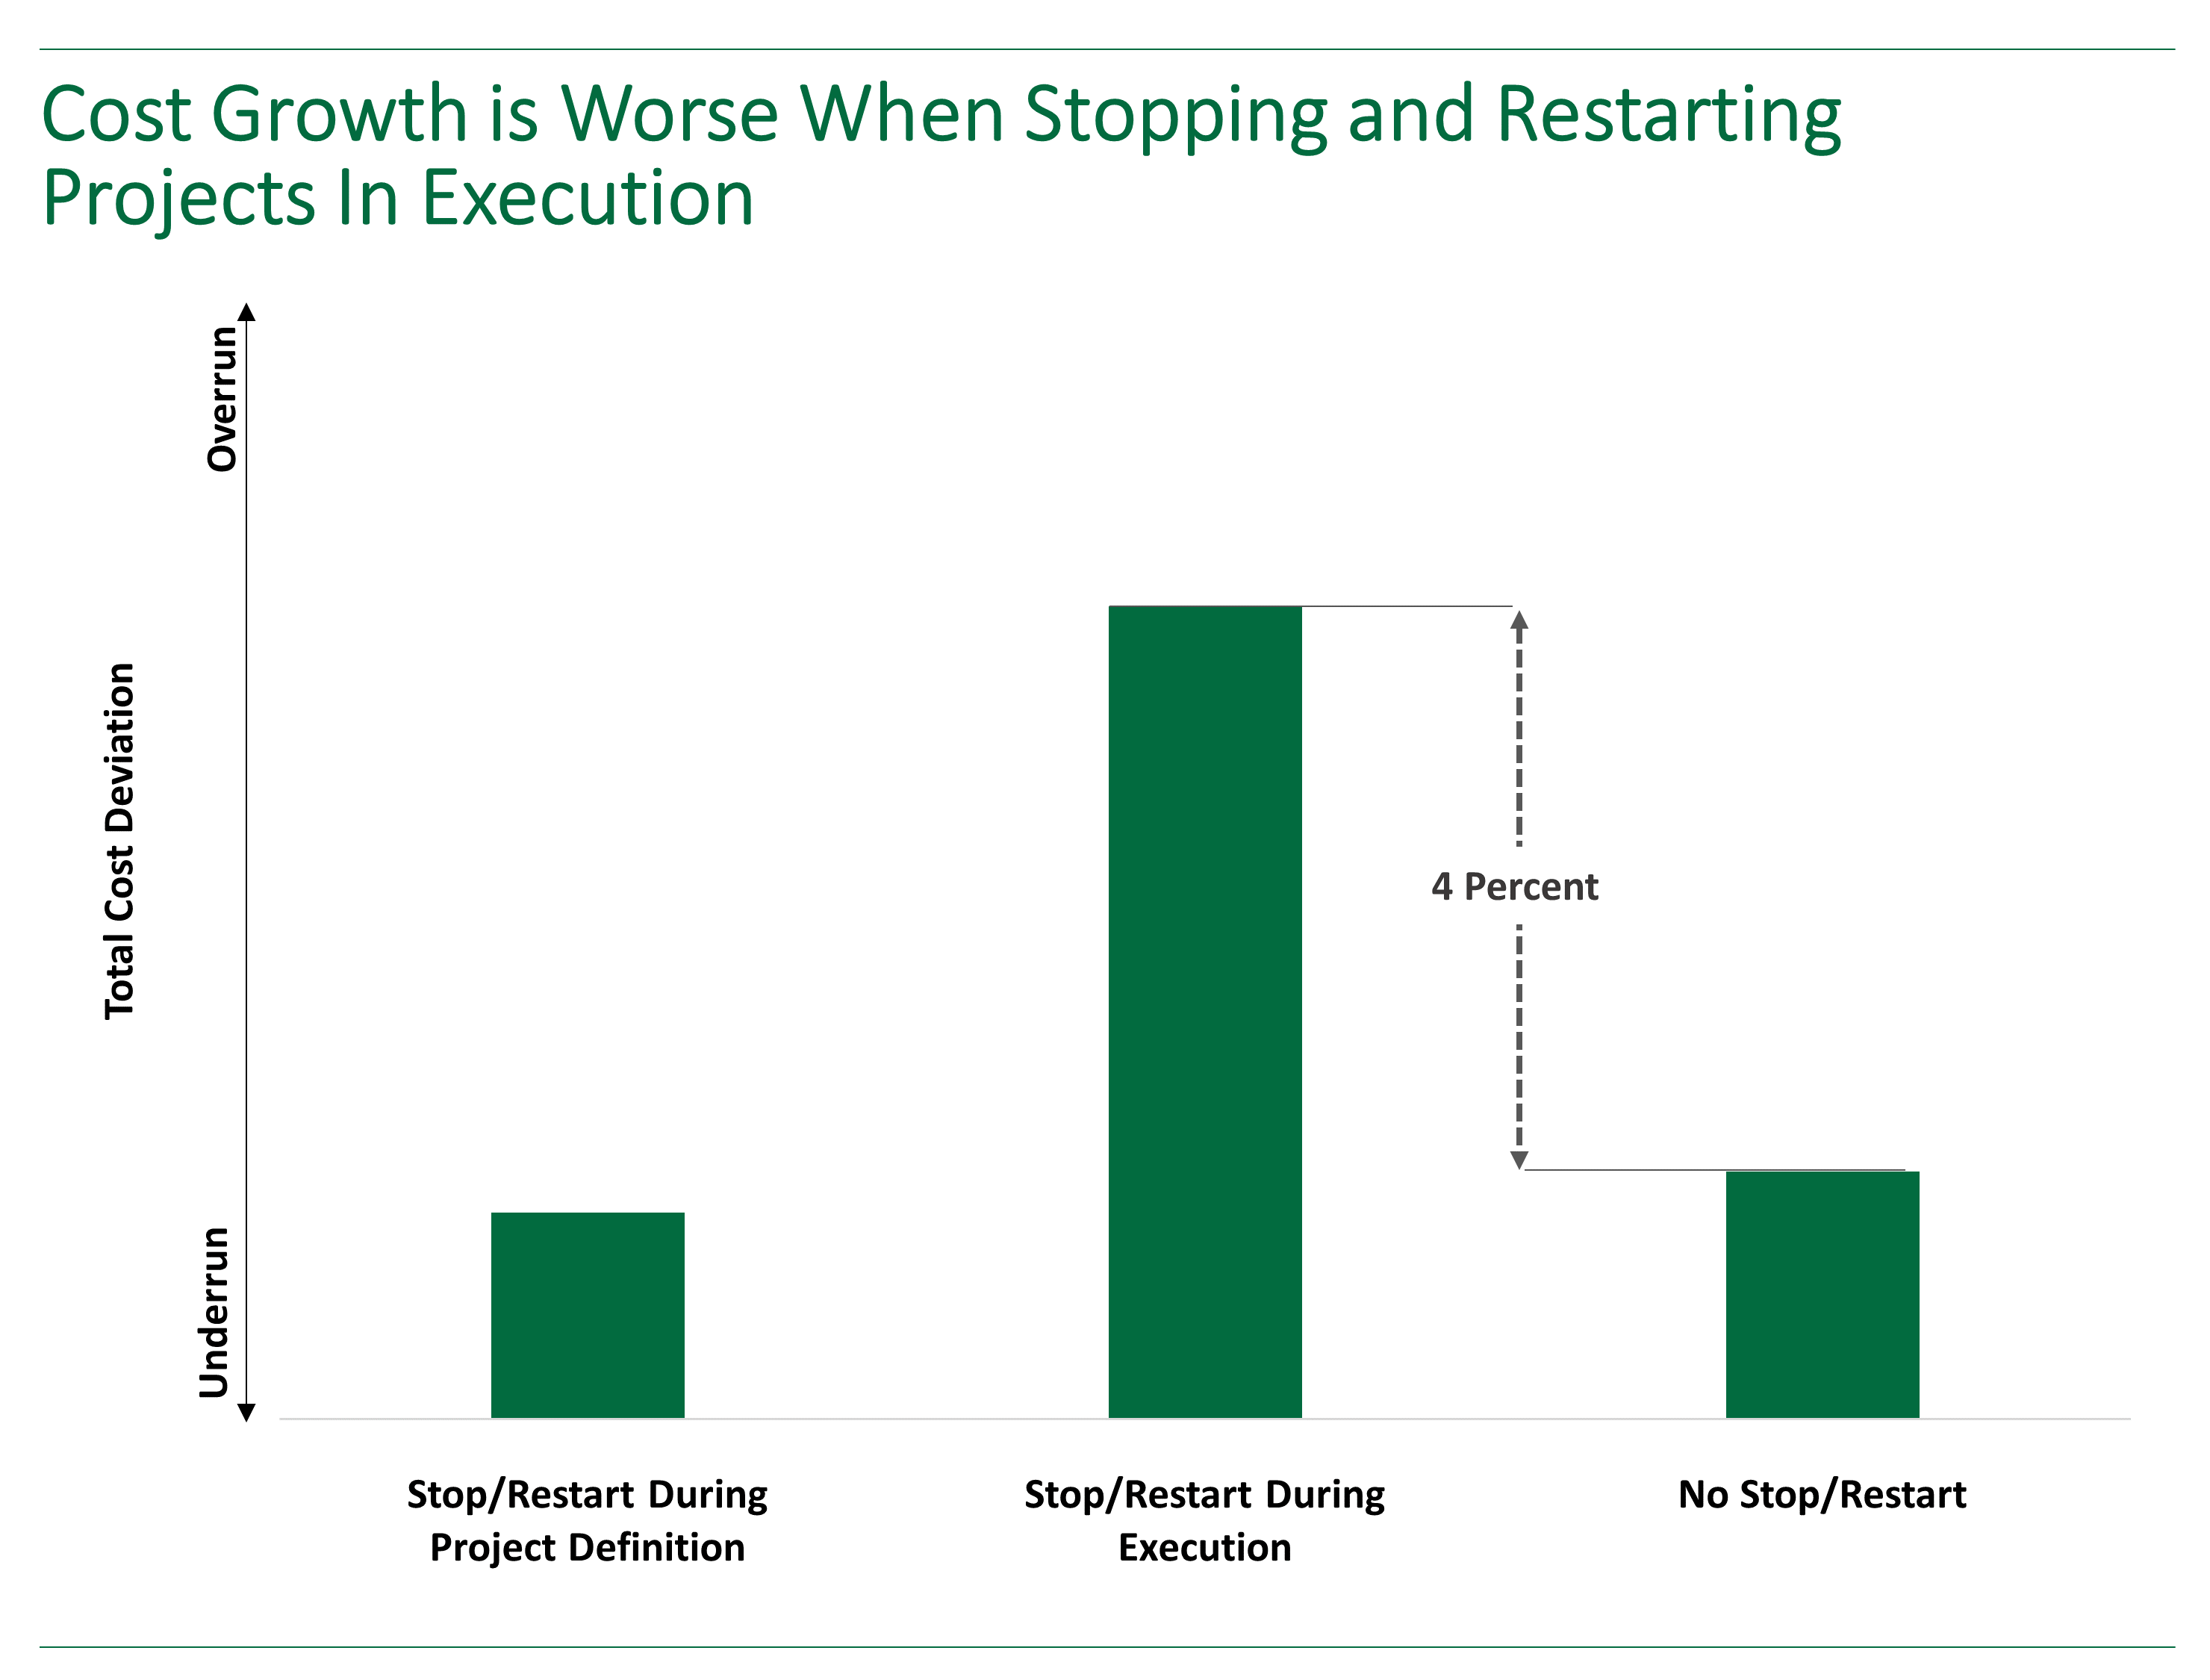 Bar chart showing how cost growth is 4 percent worse when stopping and restarting capital projects in execution.